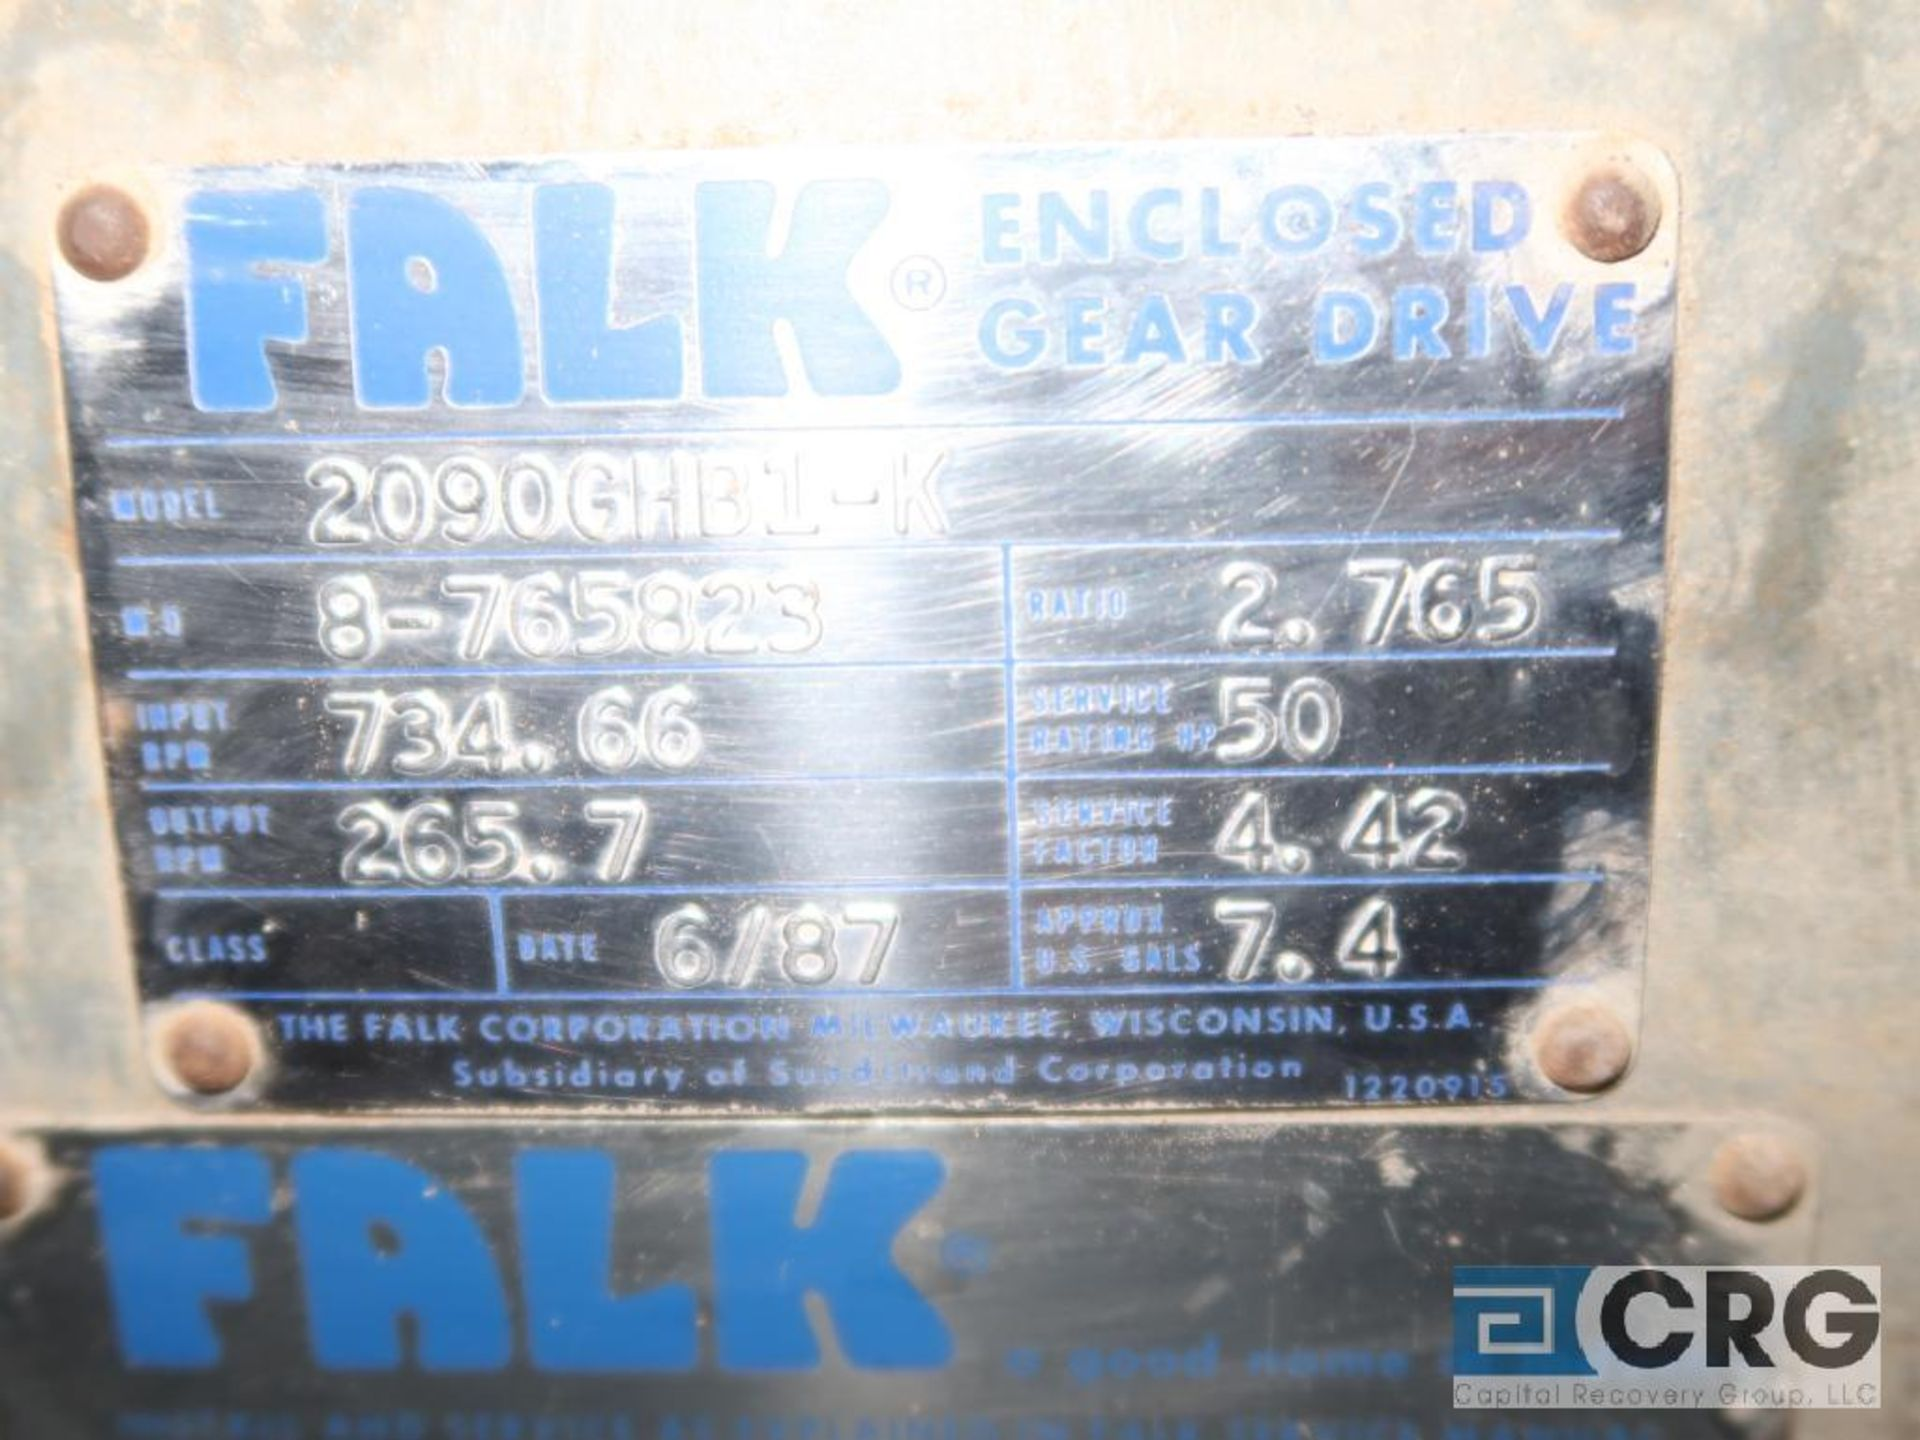 Falk 2090GHB1K gear drive, ratio-2.765, input RPM 734.66, output RPM 265.7, service rate HP. 50, s/n - Image 2 of 2